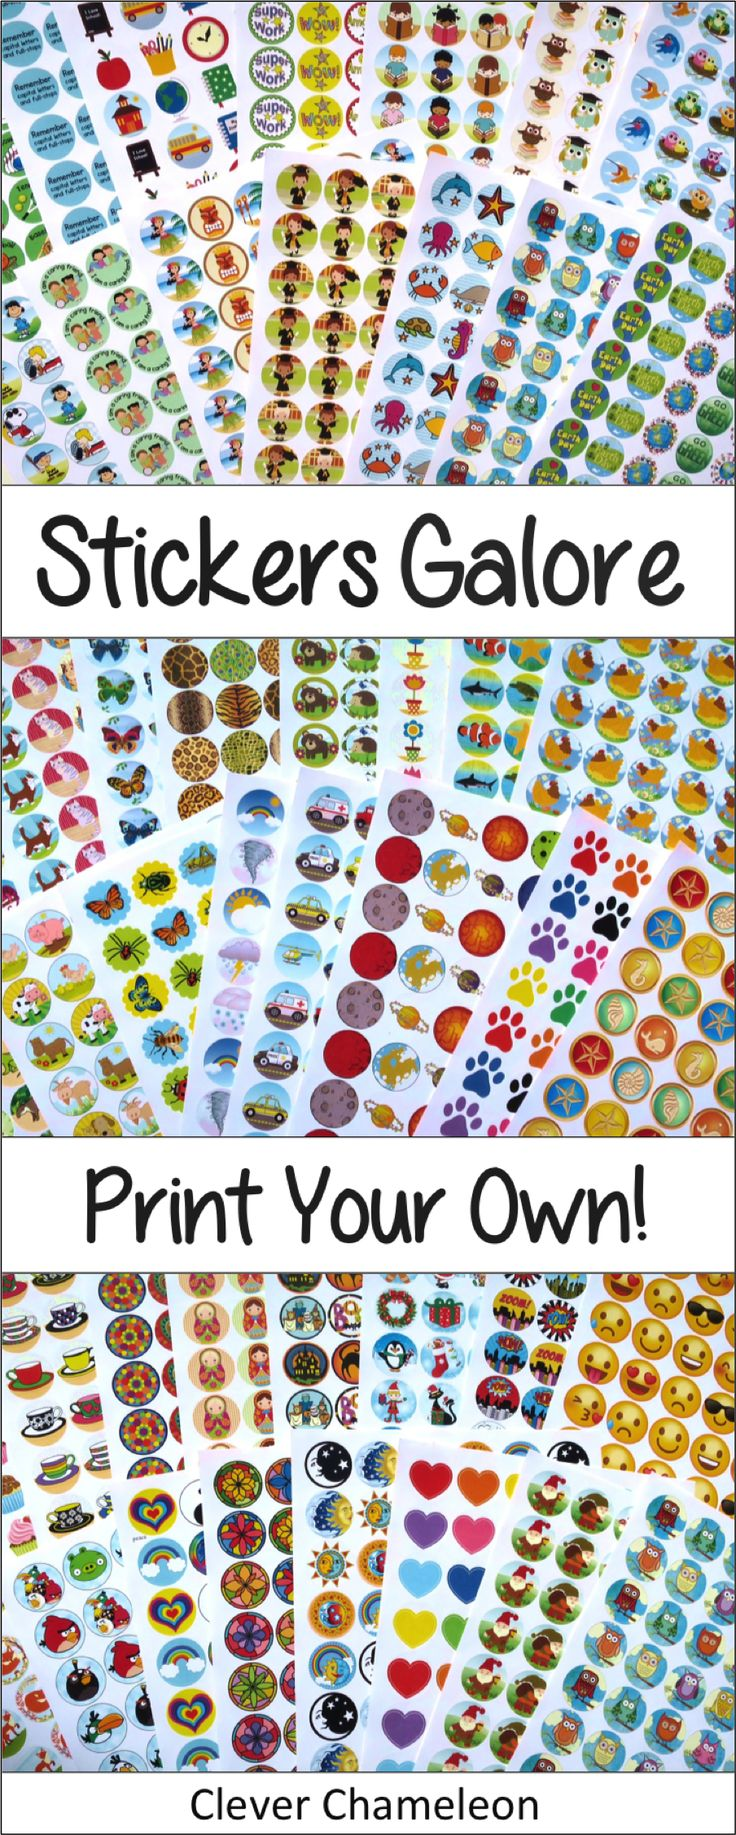 Print Your Own! 60 Printable Sticker Templates for Online Labels OL3012